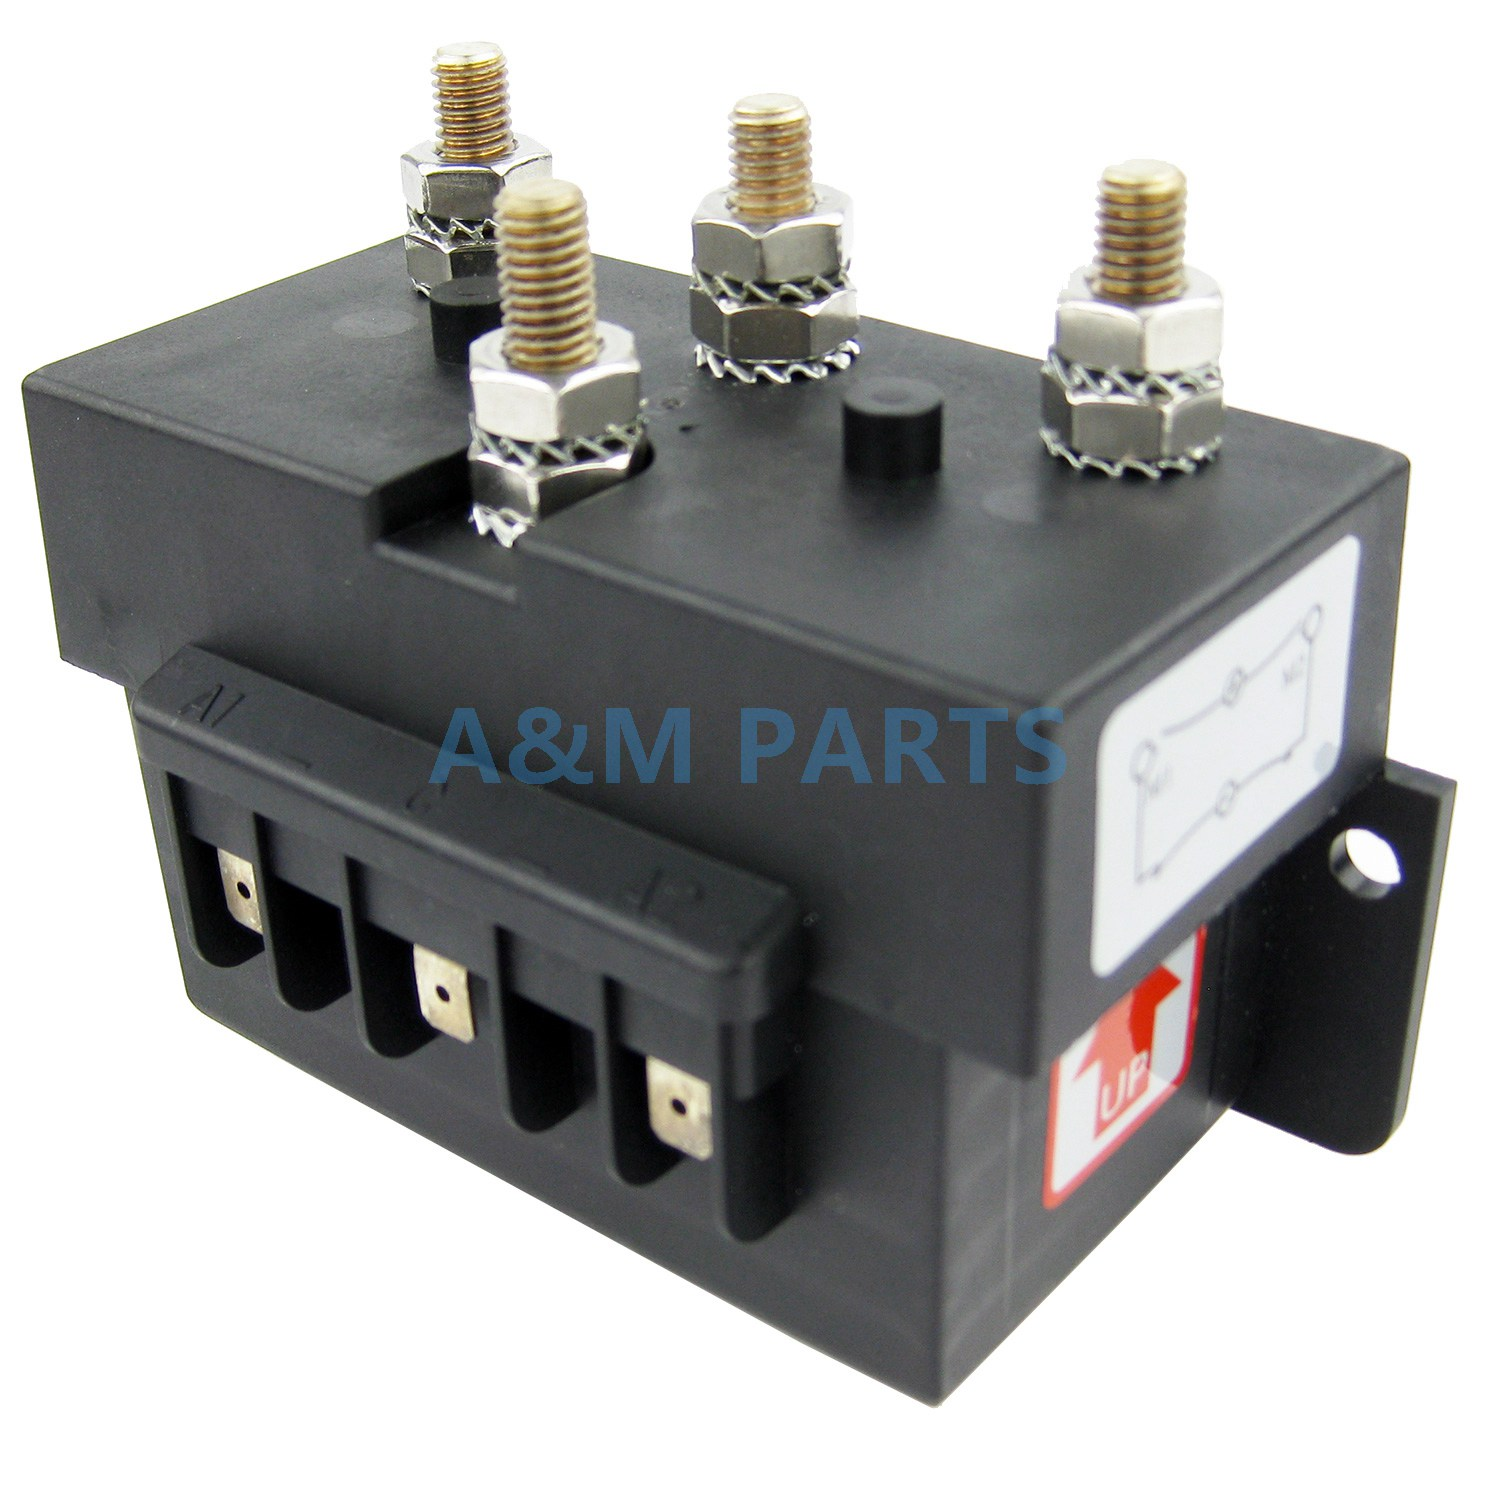 Anchor Windlass Reverse Solenoid Control Box For Marine Boat Anchor Winch 12V 1500W Max